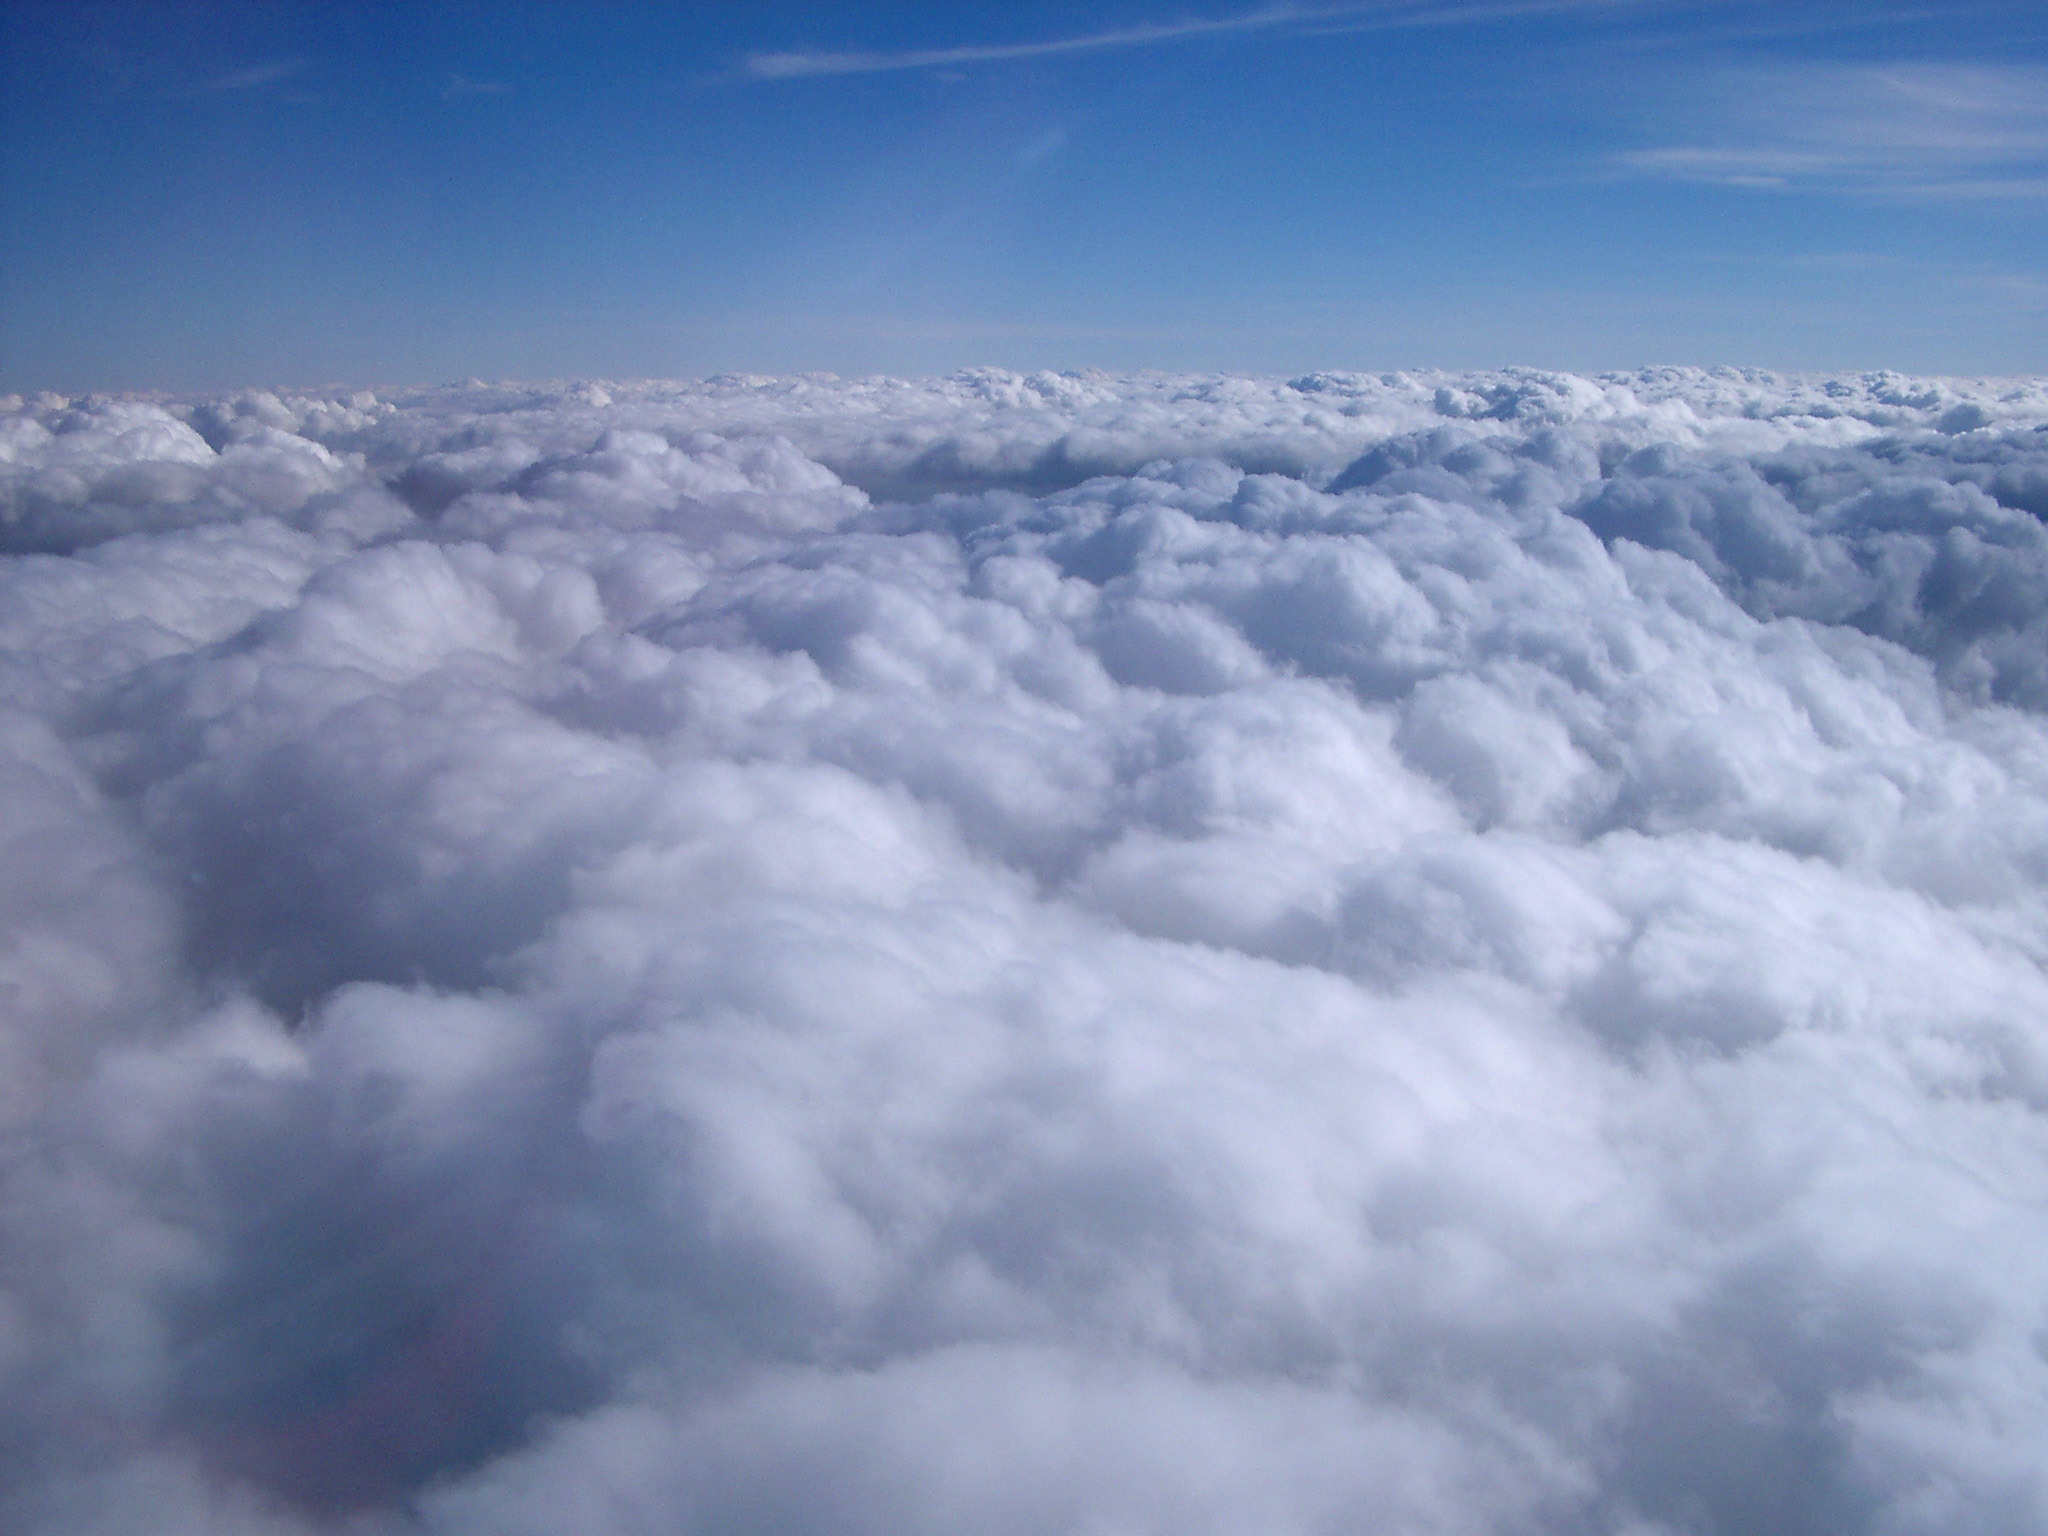 View from an aircraft above a dense layer of white fluffy clouds to clear blue sky overhead